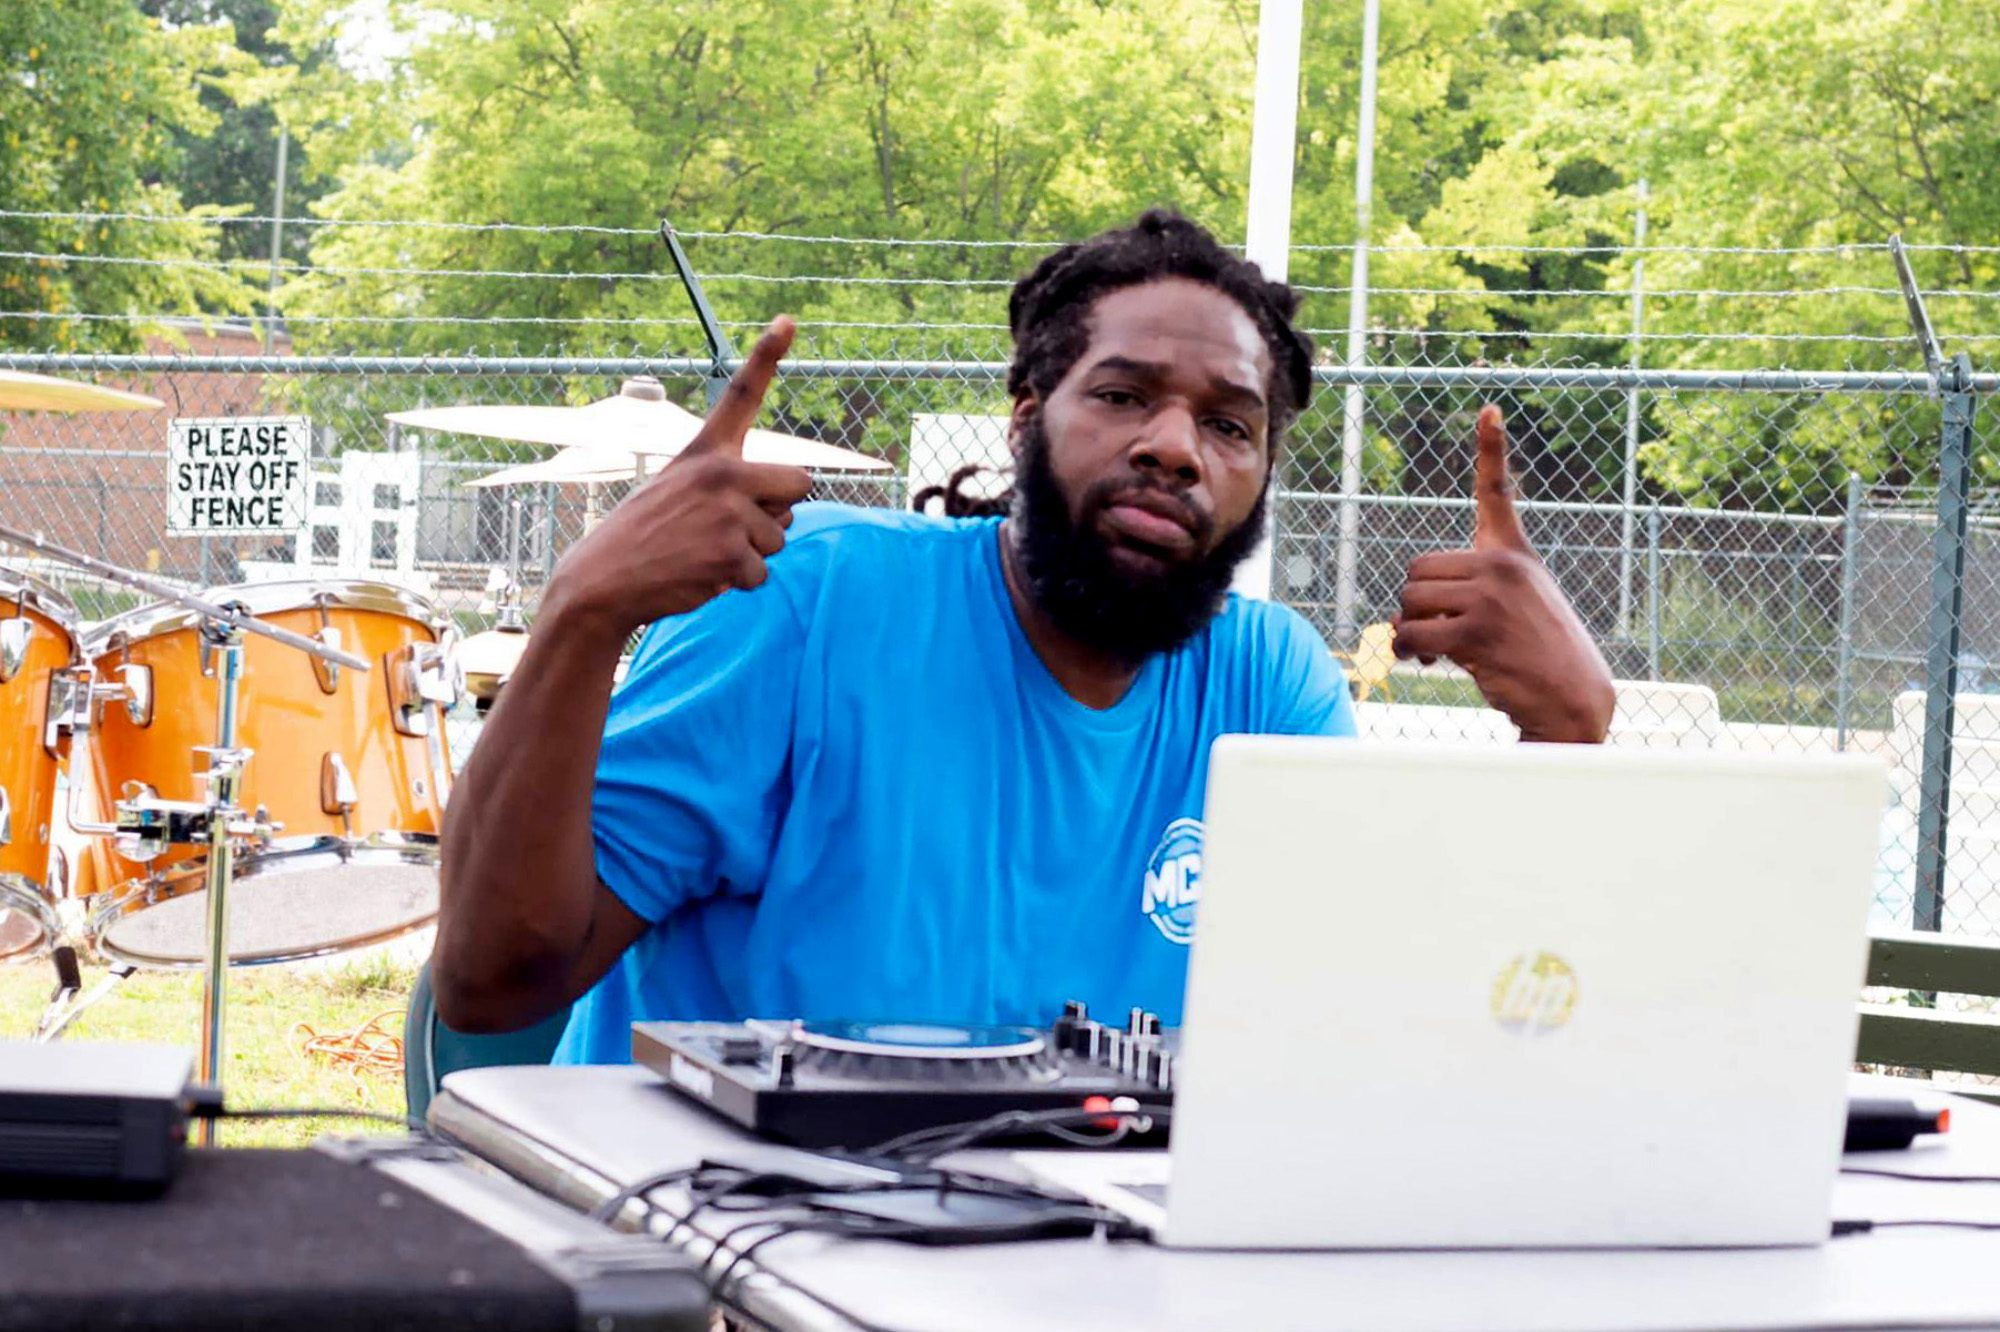 DJ Prospect Out Hrr at Marquette Community Day in Dutchtown, St. Louis, MO.